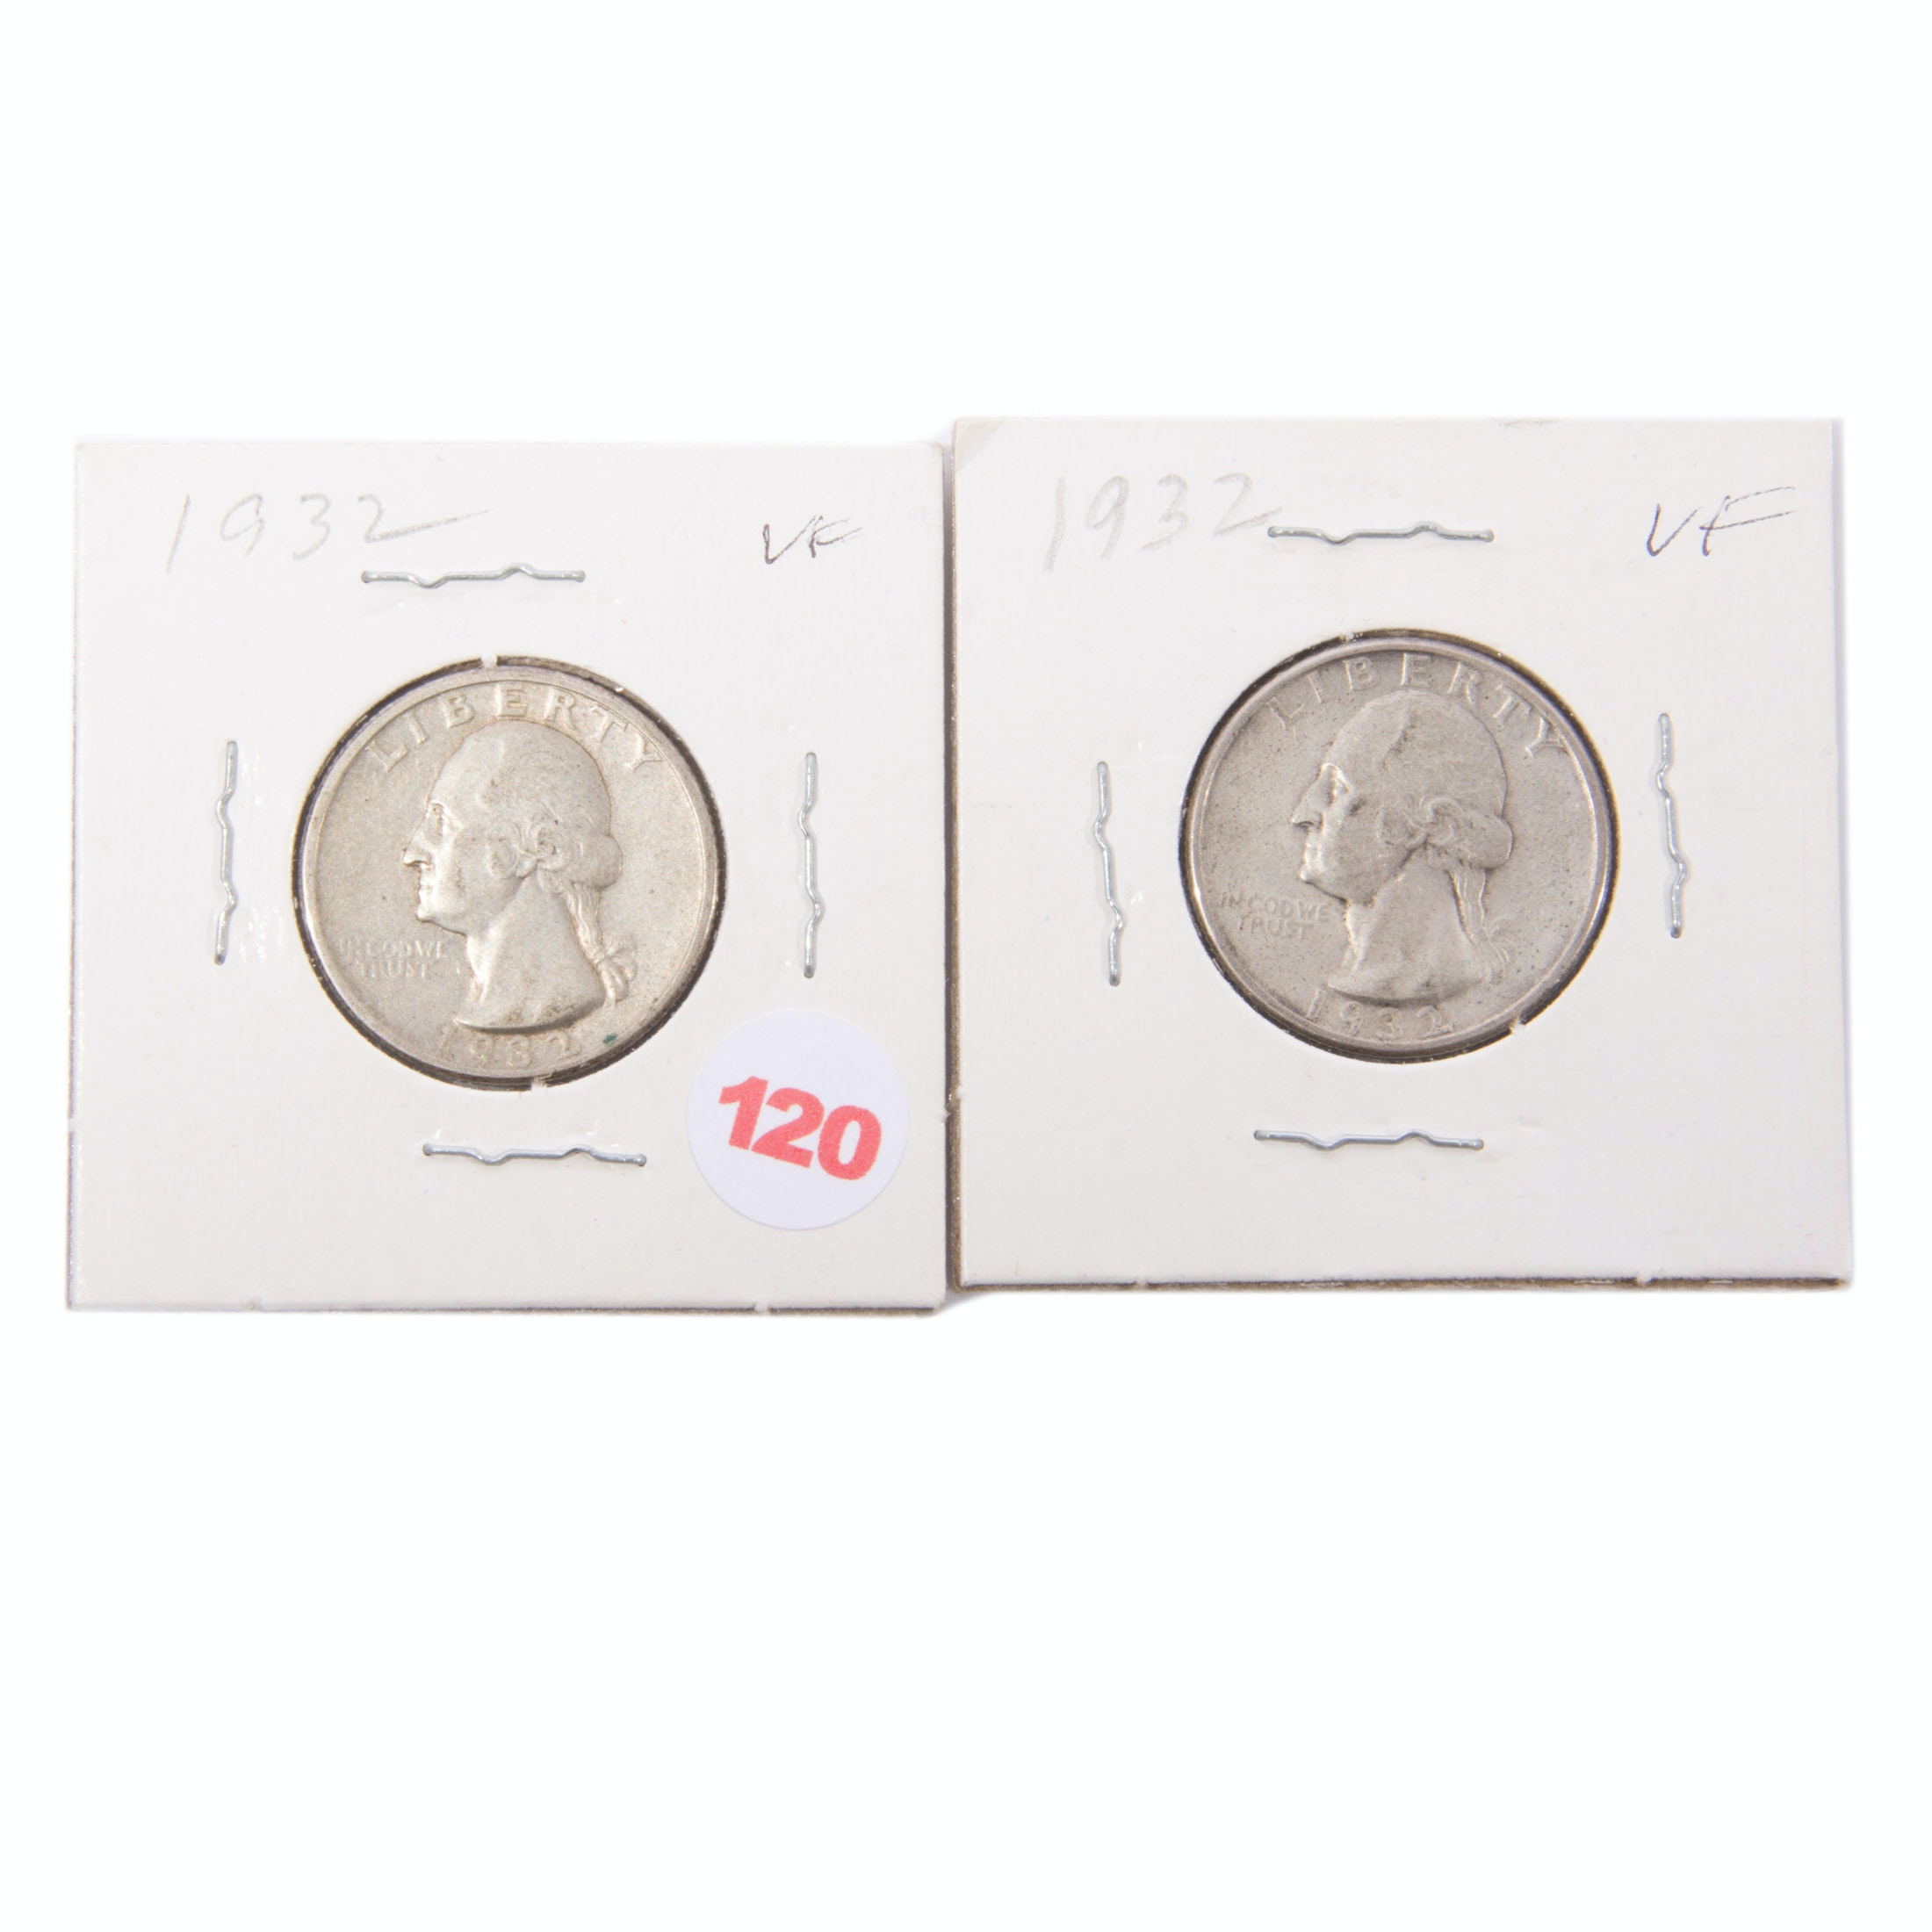 Pair of 1932 Washington Silver Quarters